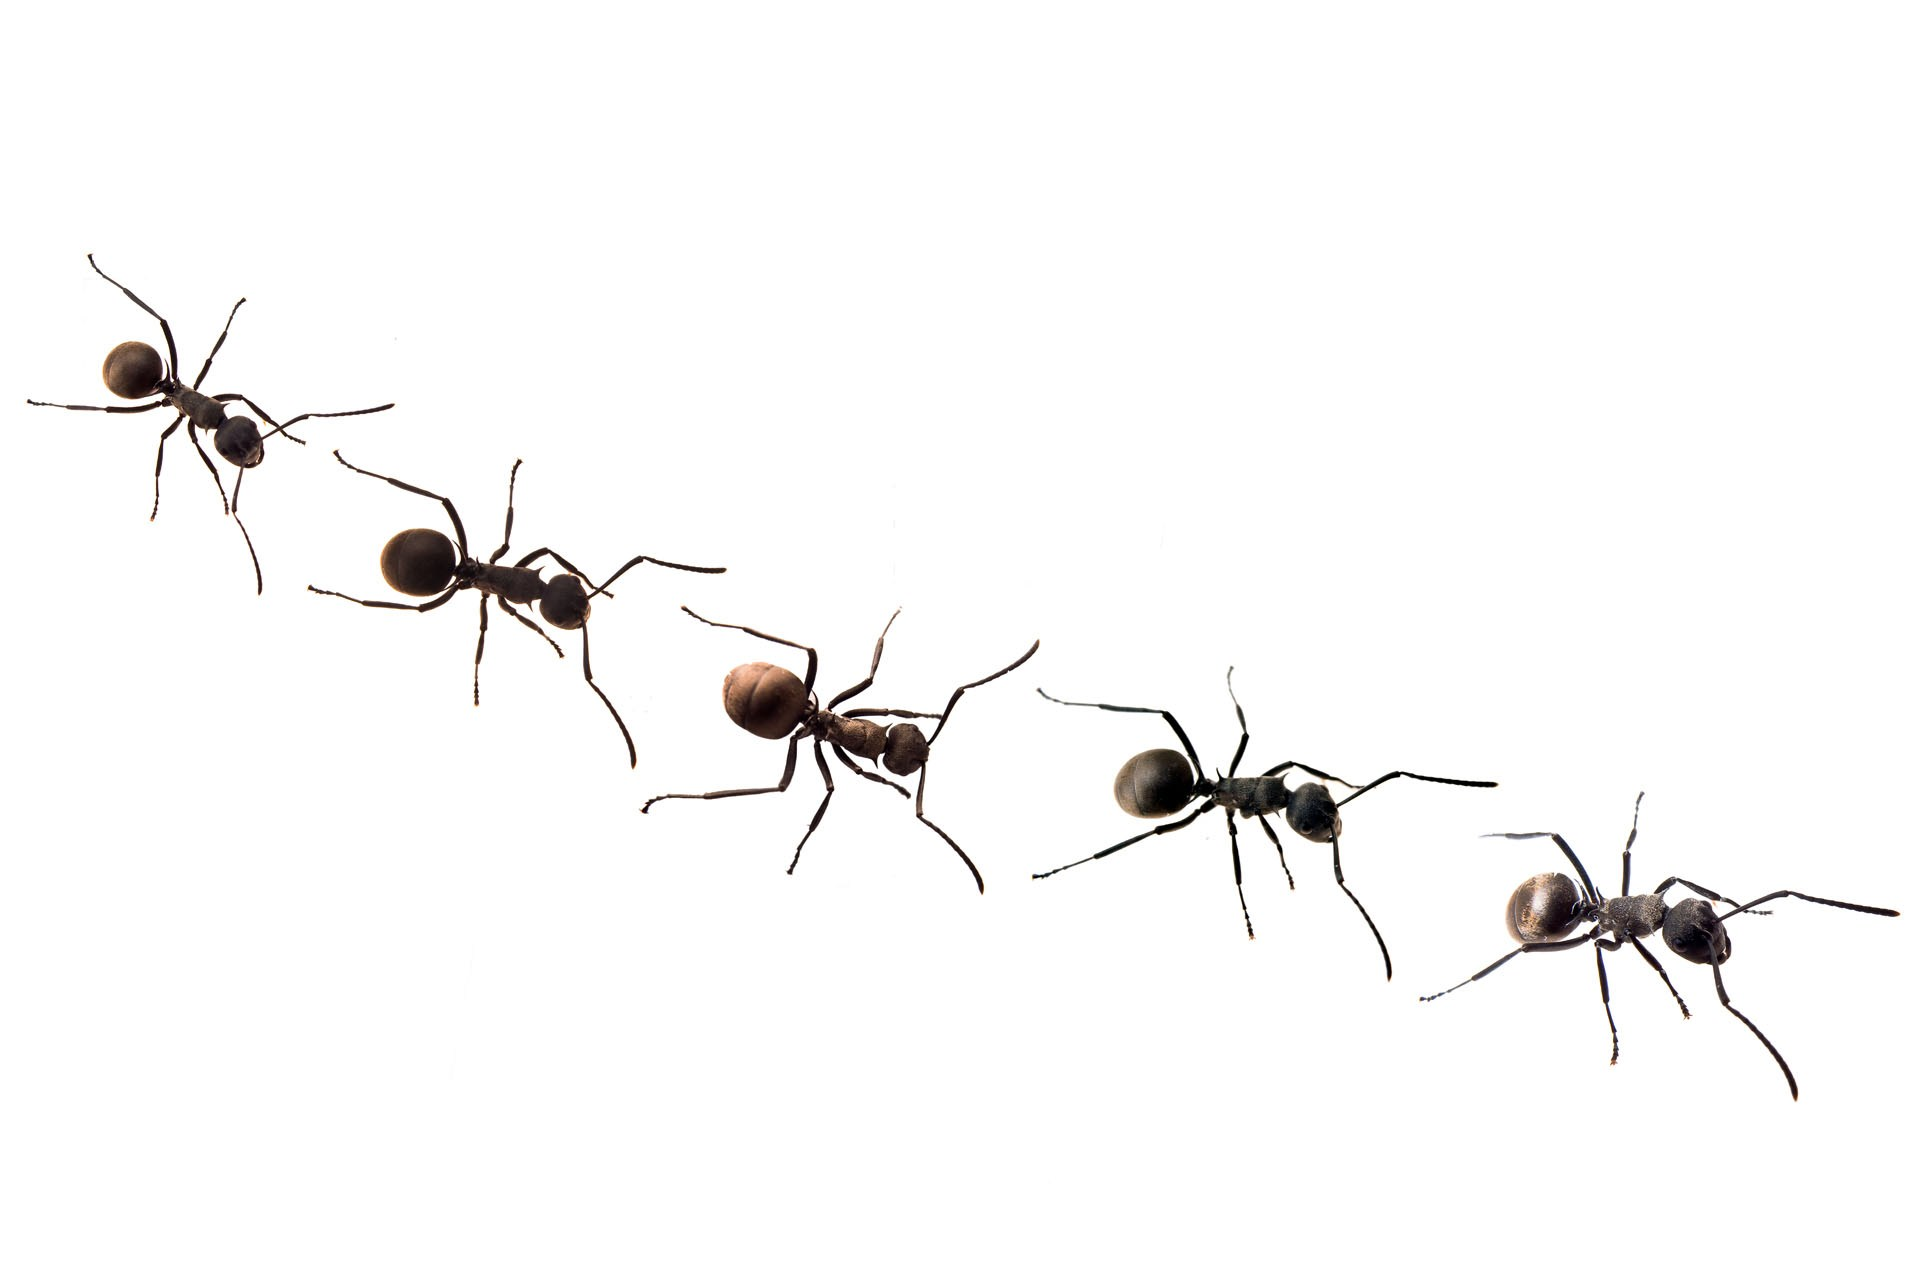 Ants trail clipart jpg transparent stock Free Marching Ants Cliparts, Download Free Clip Art, Free Clip Art ... jpg transparent stock